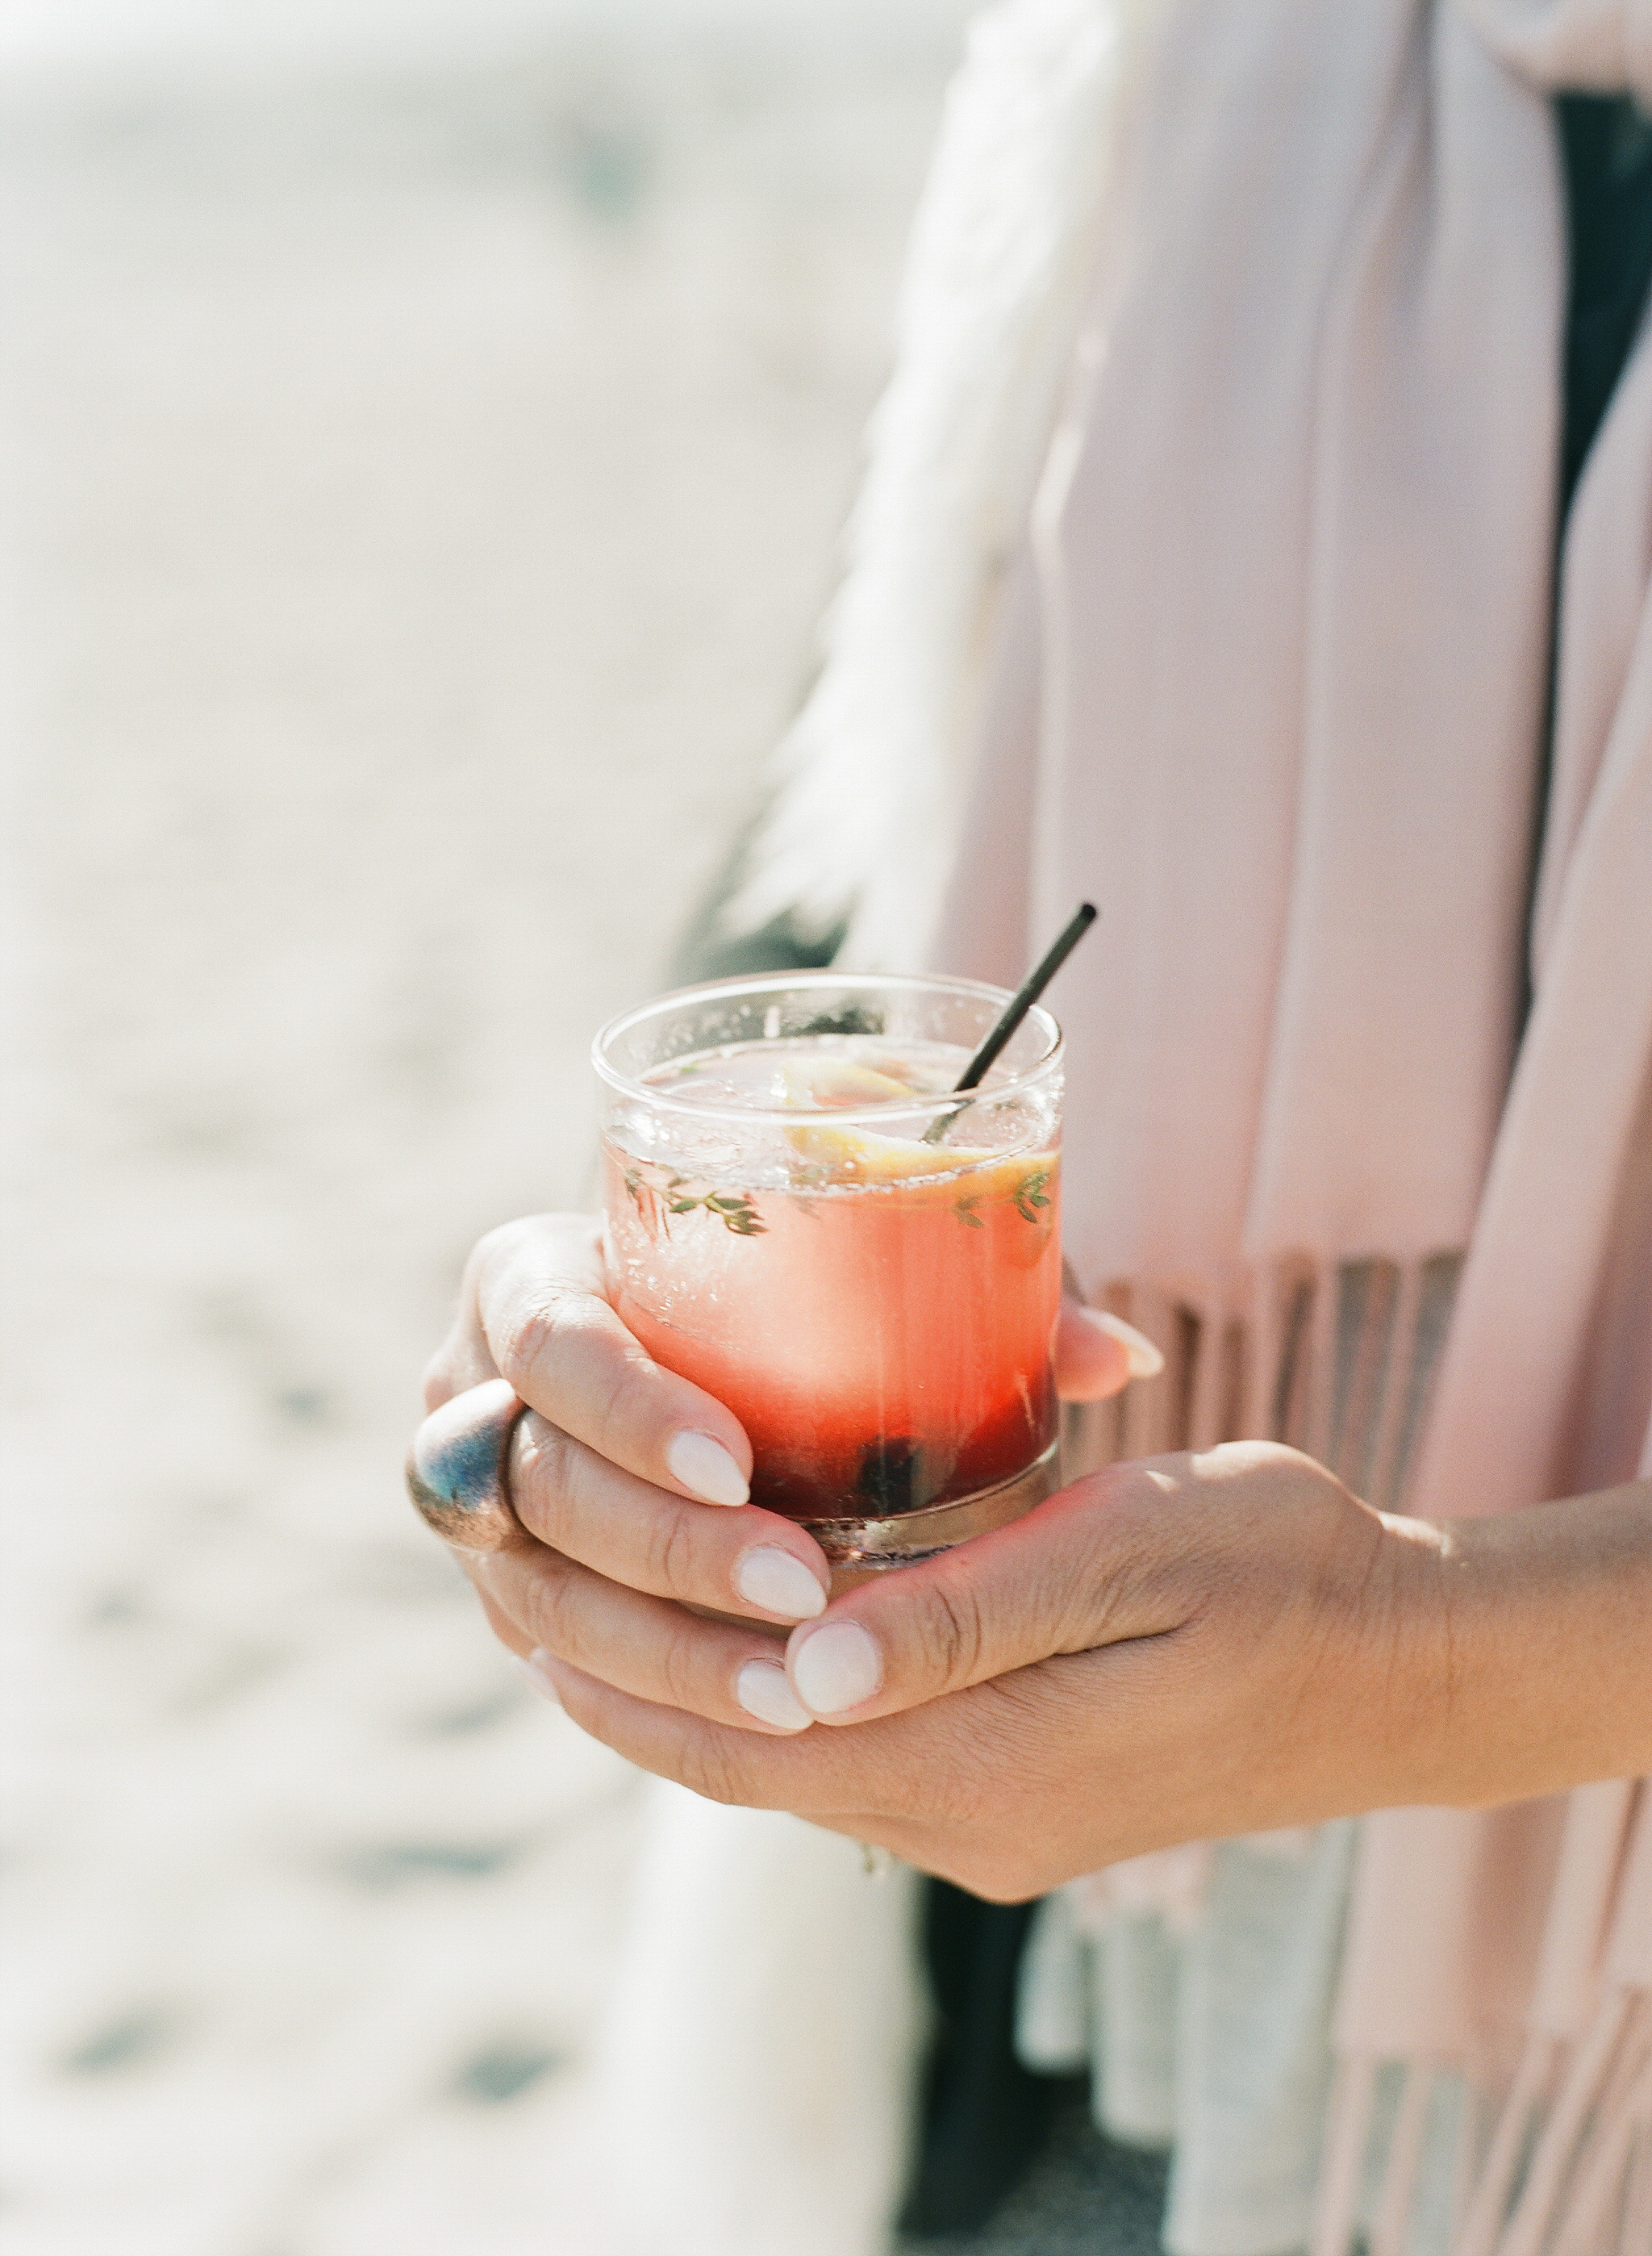 santabarbarawedidng.com | Michelle Bellar Photography | Signature Drink | Sunset Drink | gin Drink | XOXO Events